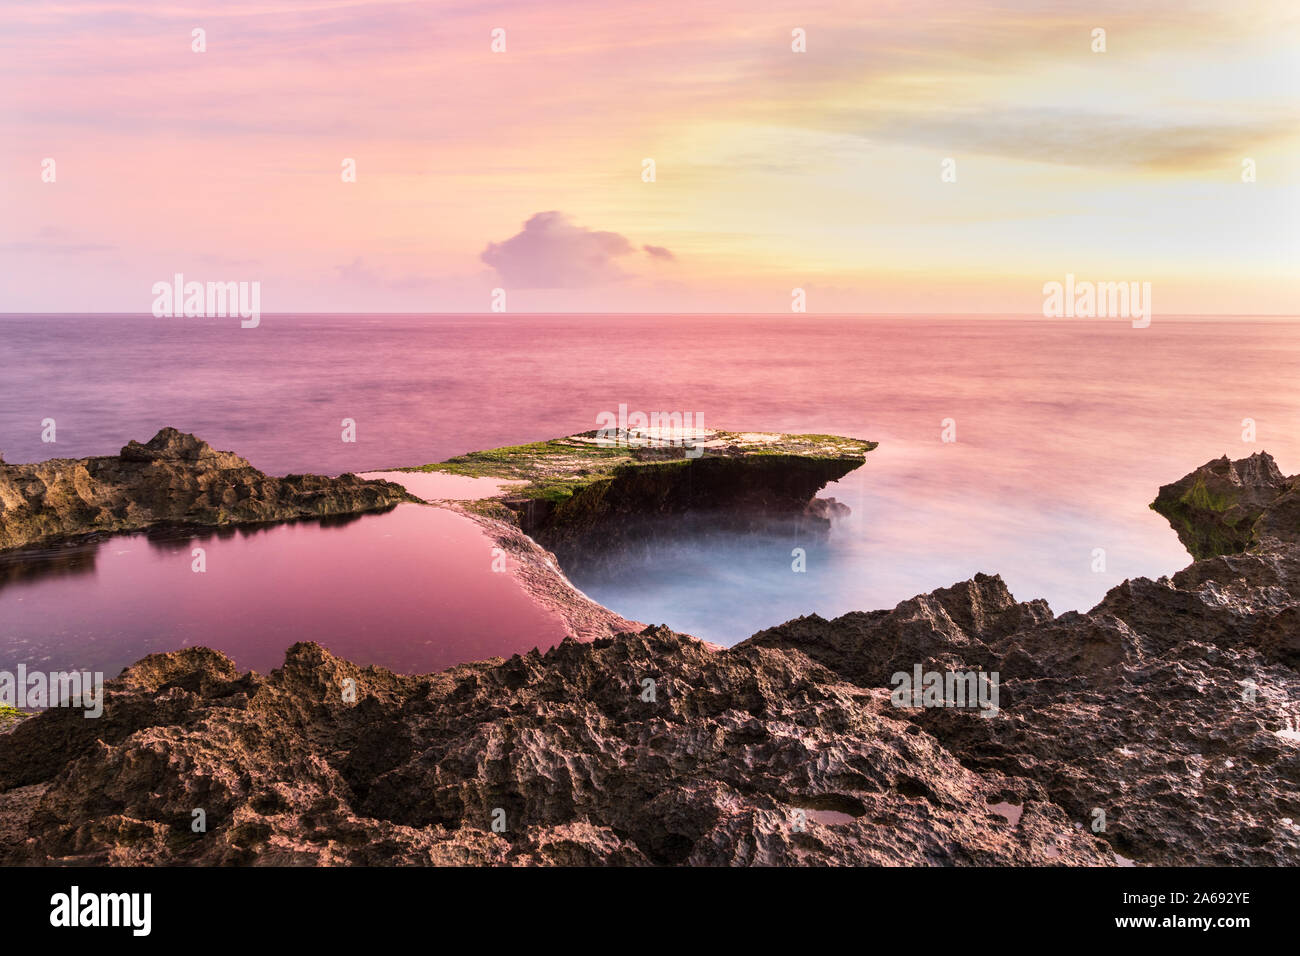 Devil's Tear at sunset, island of Nusa Lembongan, Bali, Indonesia. Rocky shore in foreground. Tidepool and ocean pink from setting sun's reflection. Stock Photo